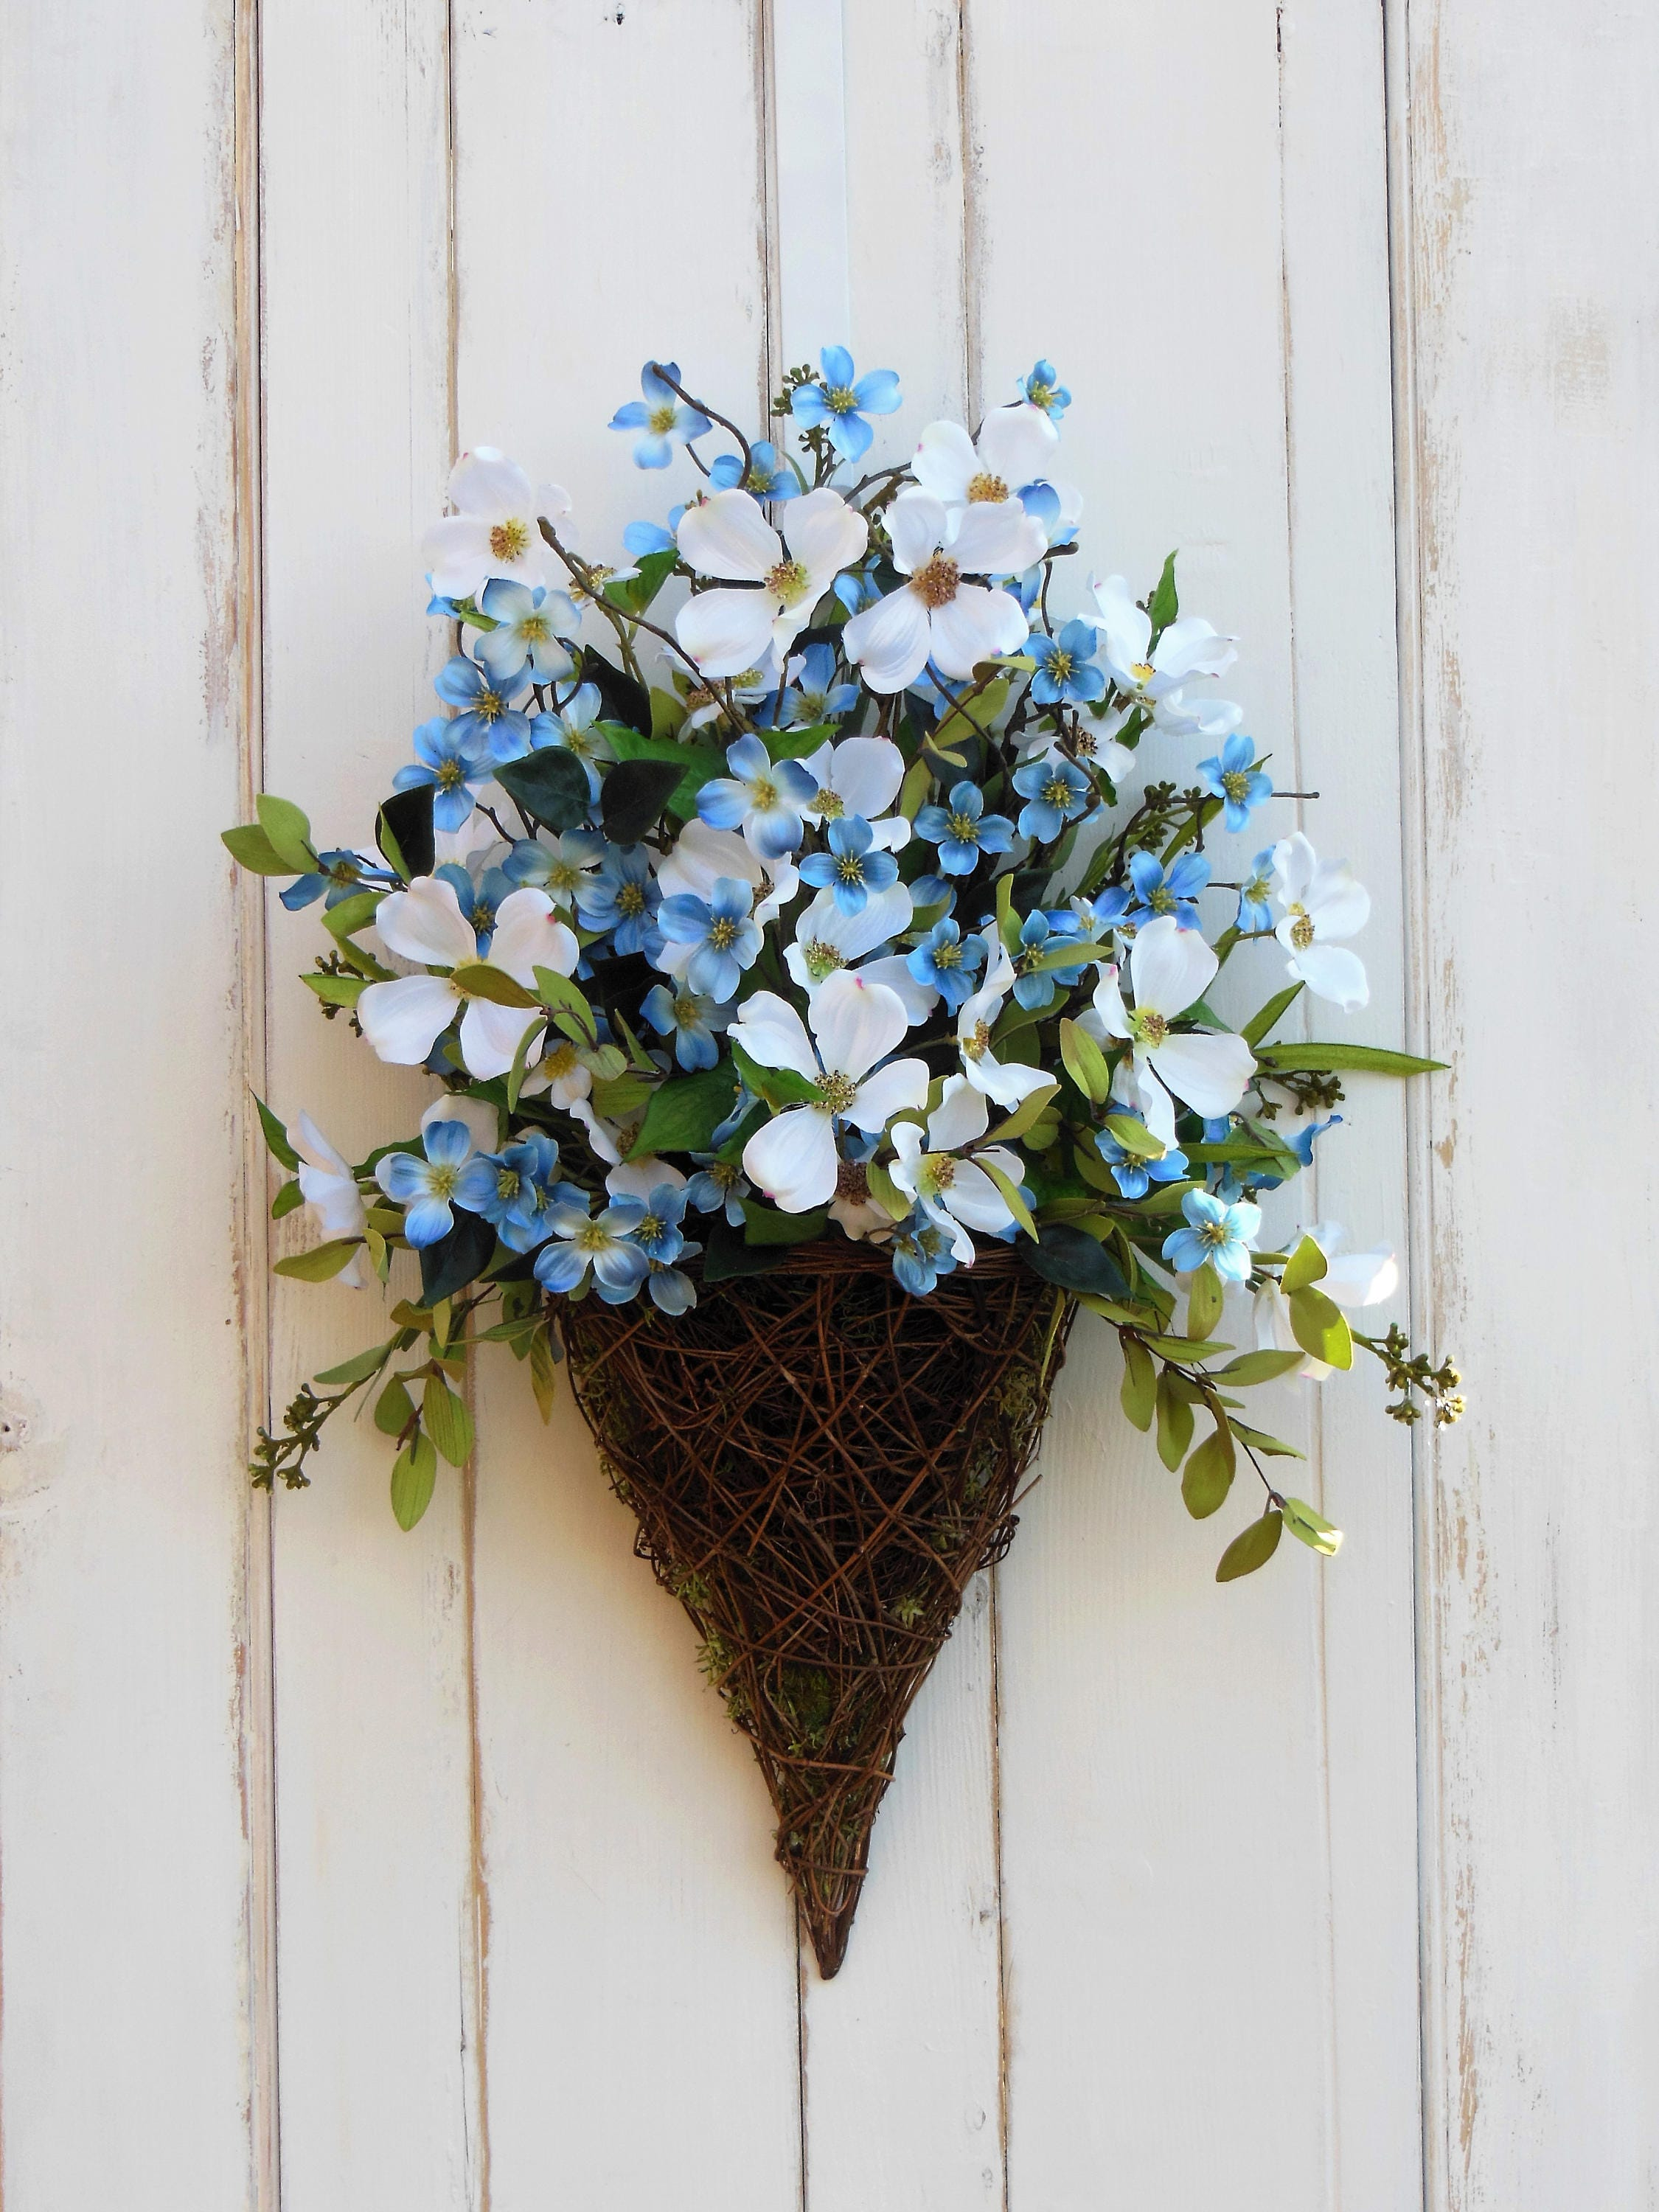 Front door wreath door basket blue flower wreath summer wreath front door wreath door basket blue flower wreath summer wreath all season wreath wreath for summer summer door basket everyday wreath izmirmasajfo Gallery